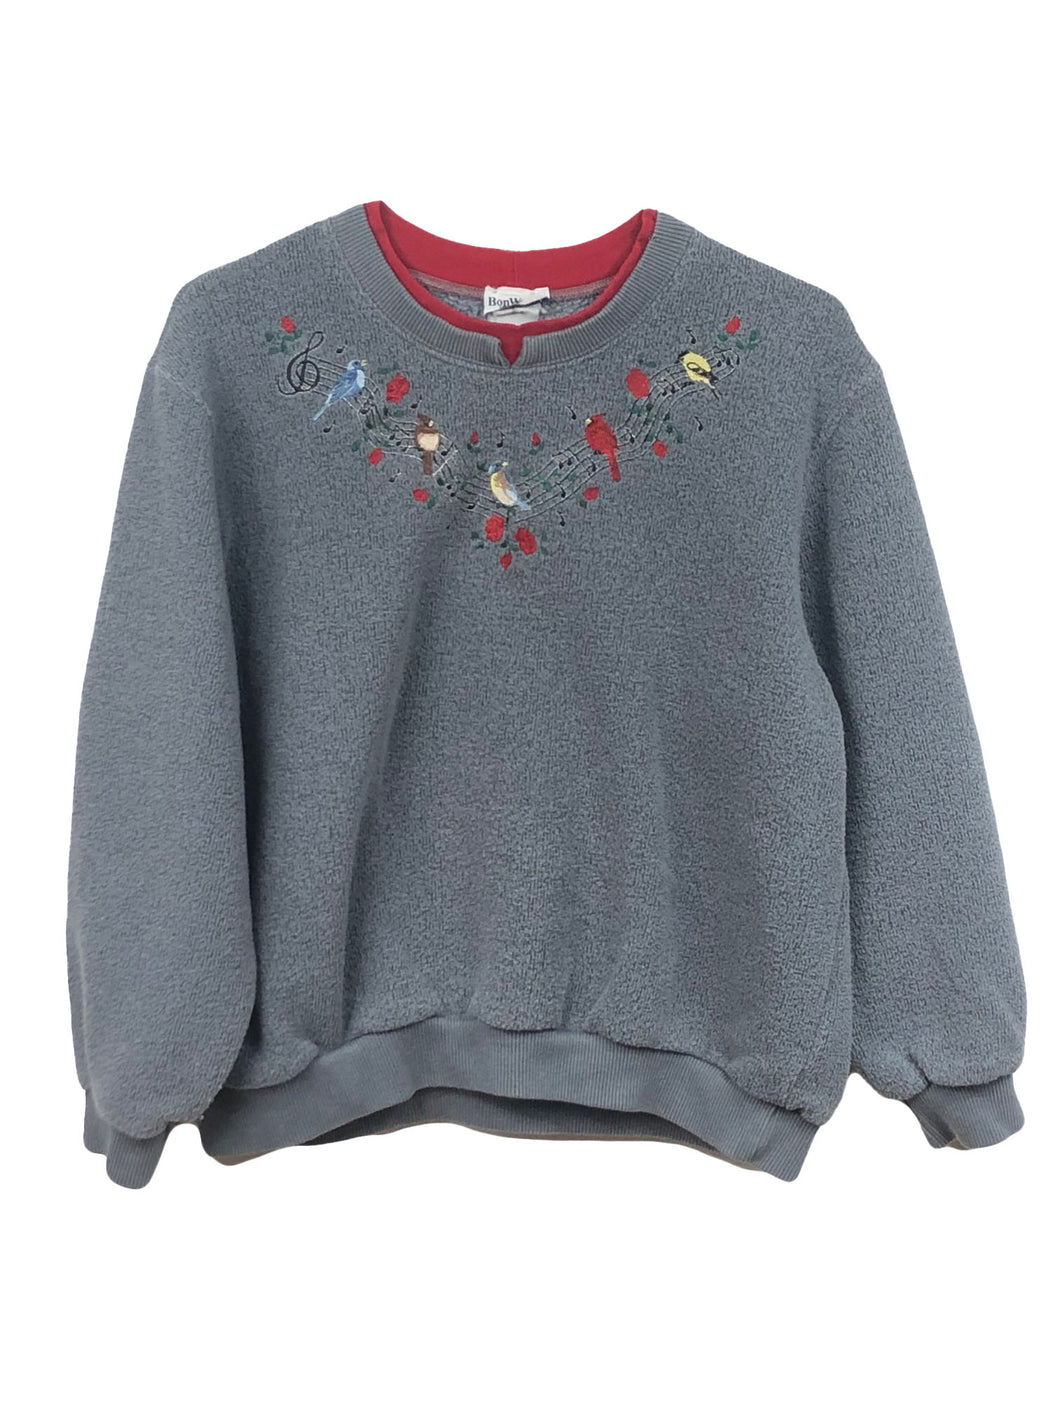 Song Bird Fleece Crewneck